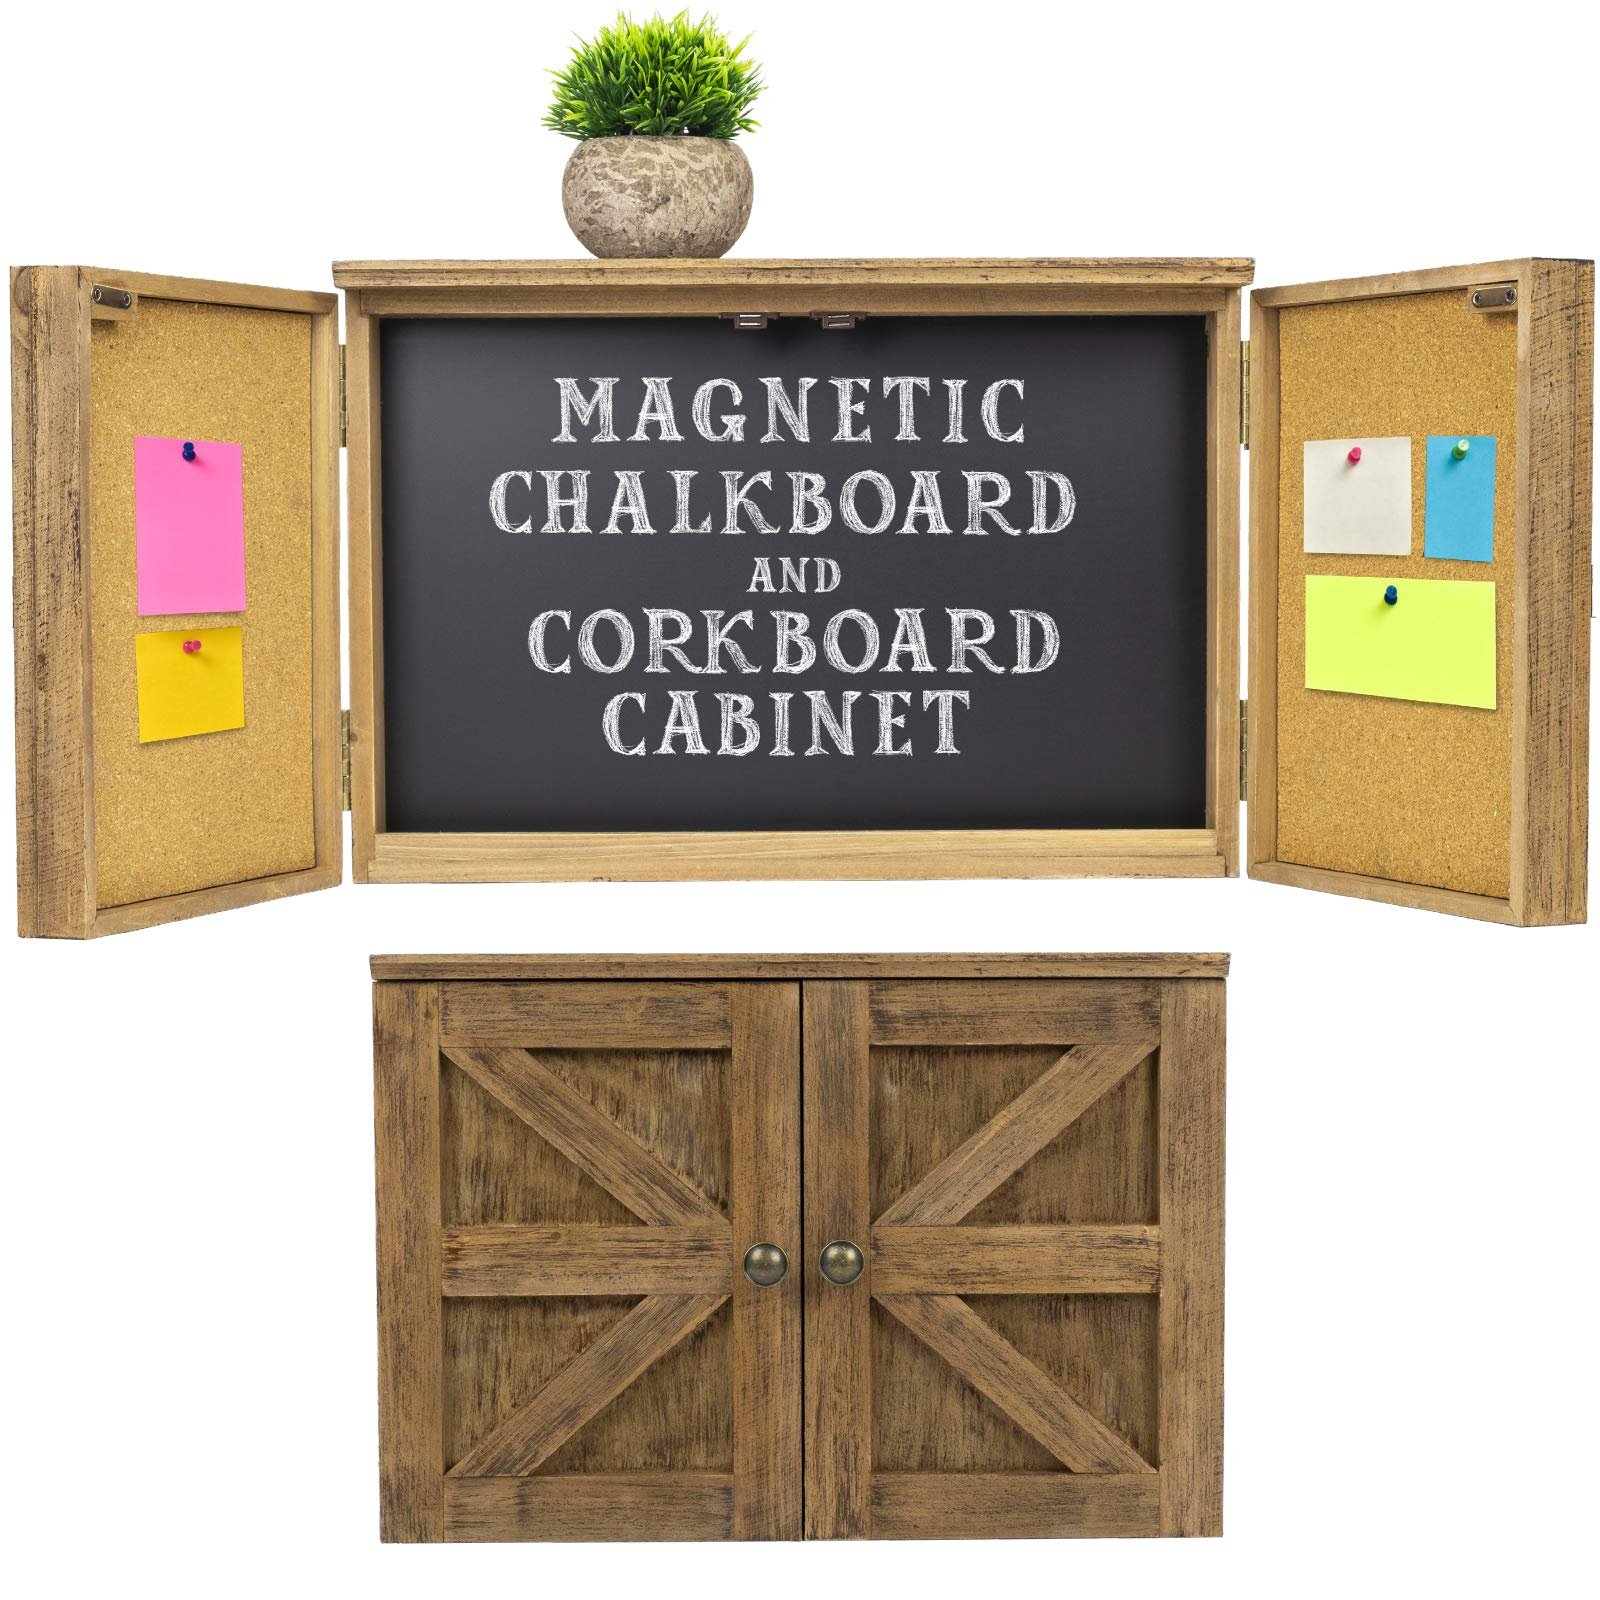 Wooden Rustic Magnetic Chalkboard: Wall Mounted Entryway Cabinet Includes Cork Board and Erasable Chalk Board Organizer Display Shelf and Key Hooks (Brown) by Excello Global Products